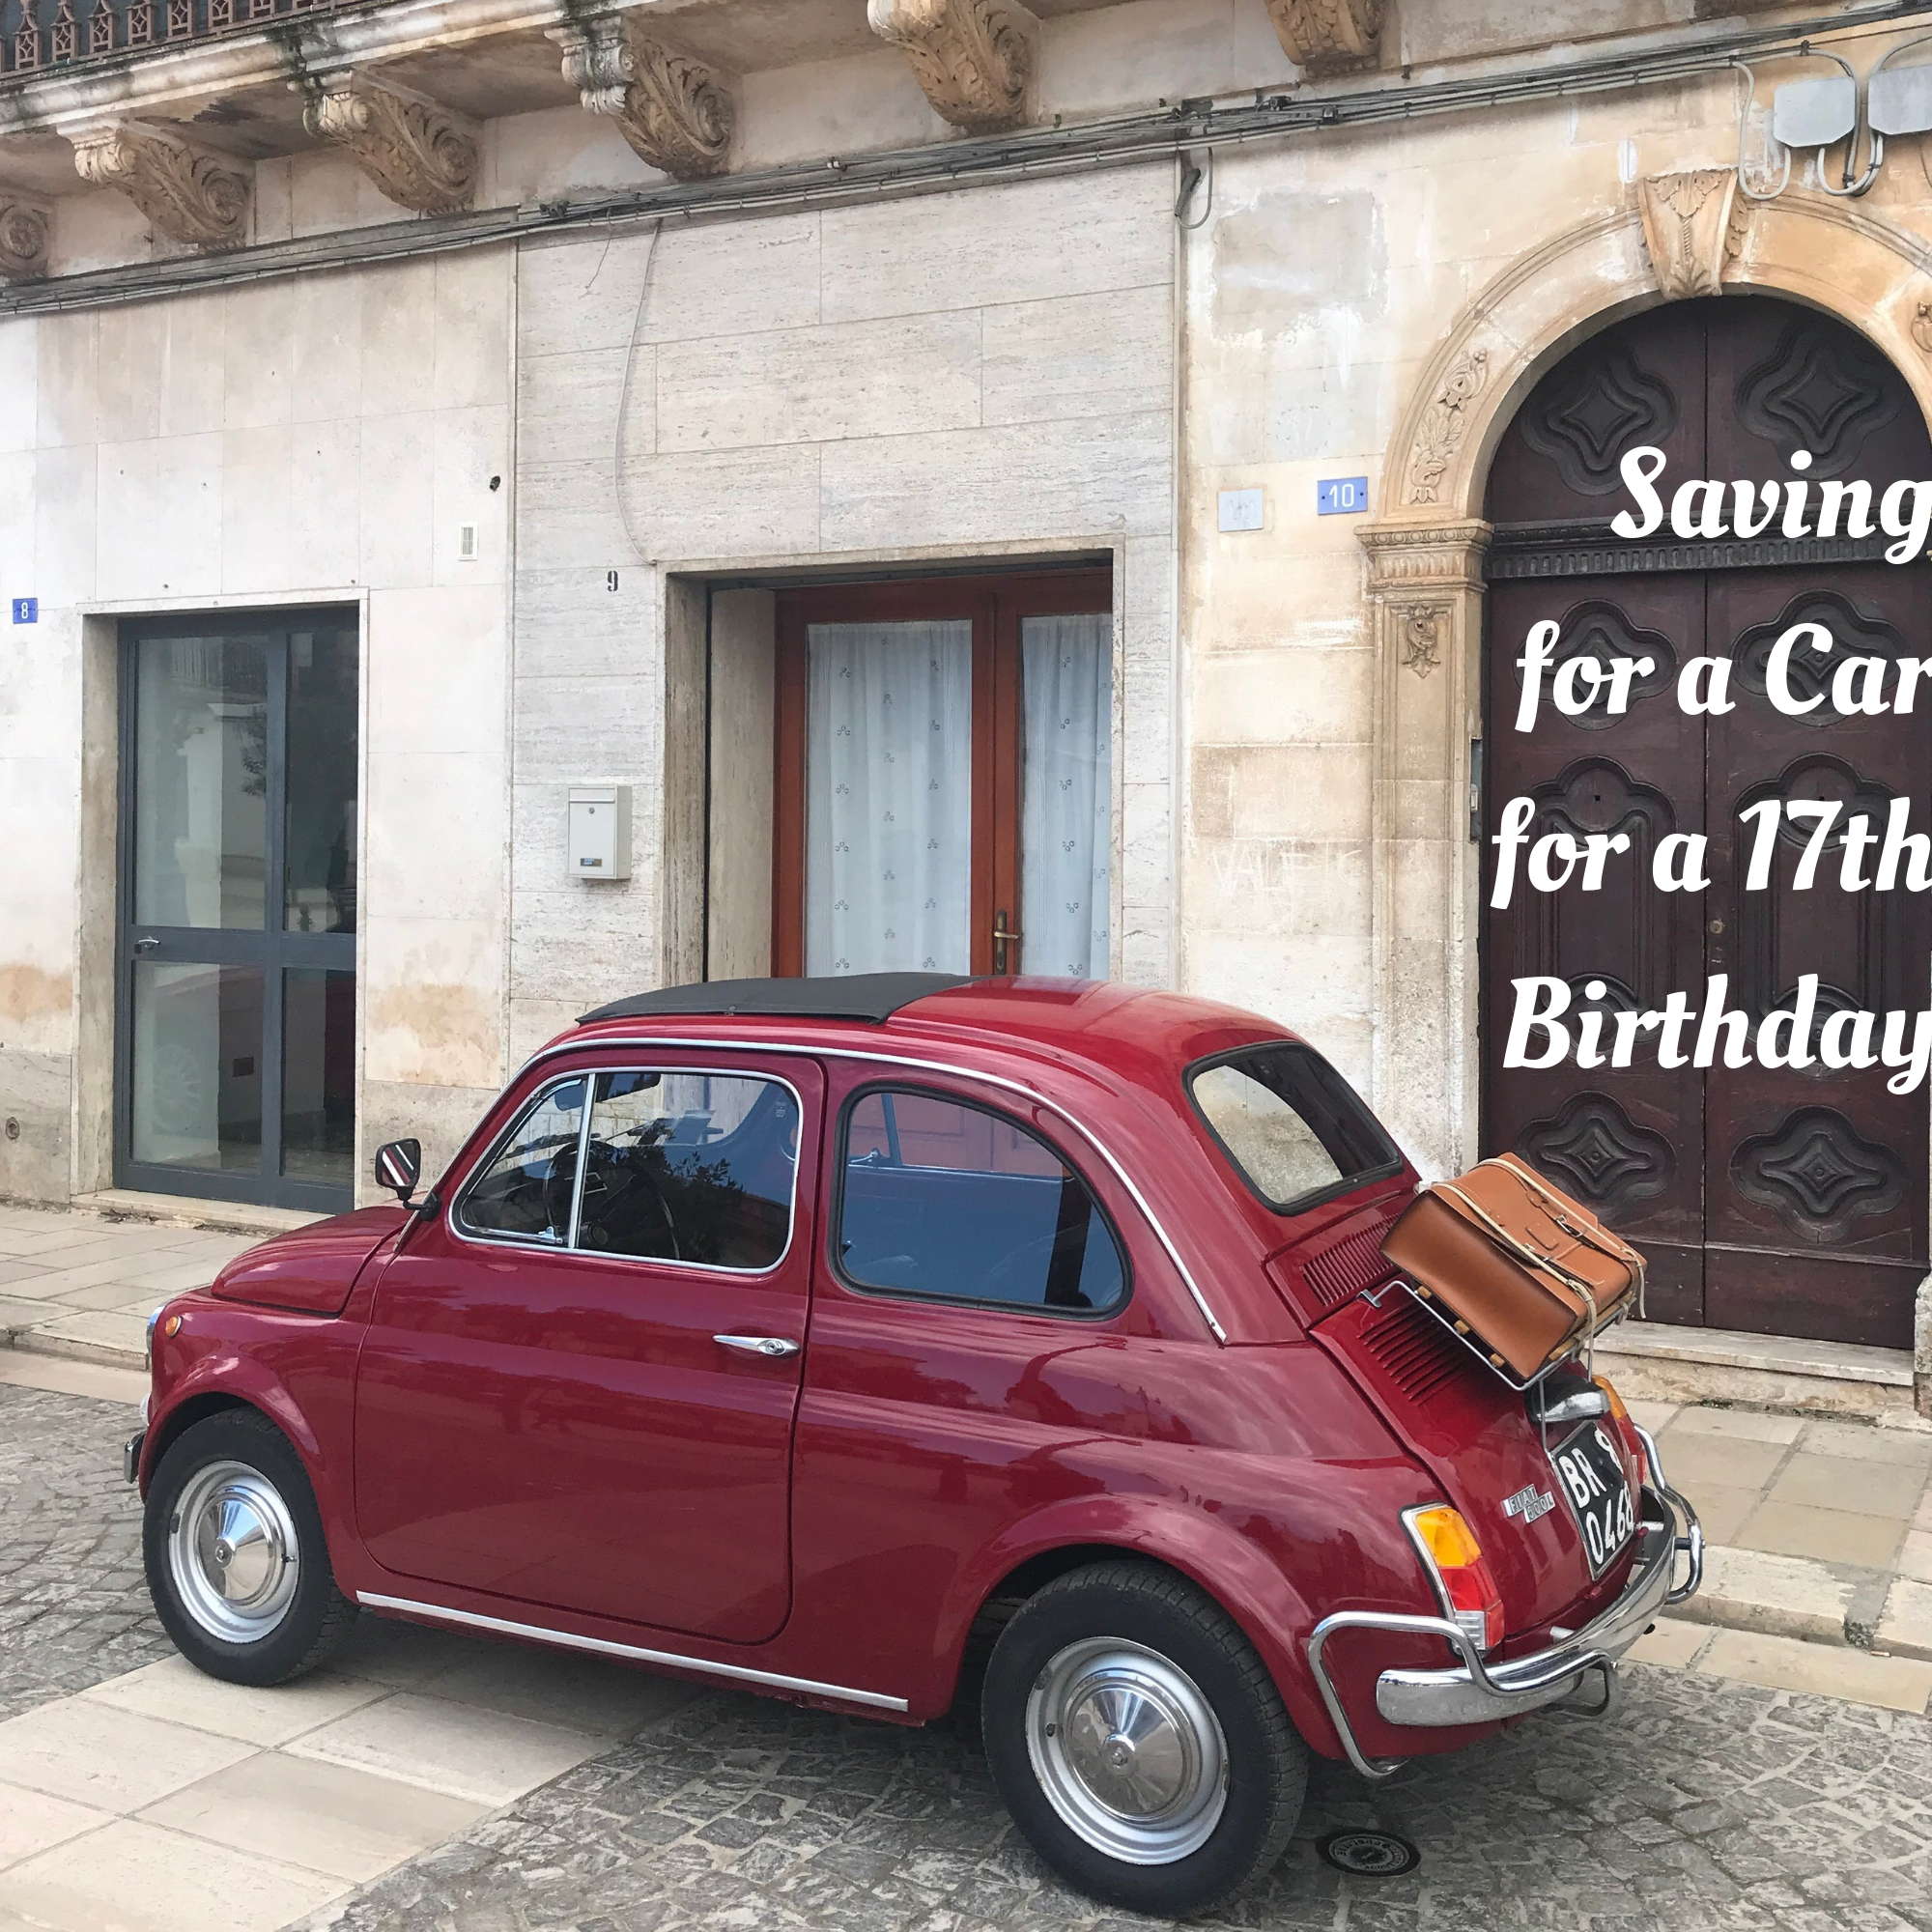 Saving for a Car for a 17th Birthday